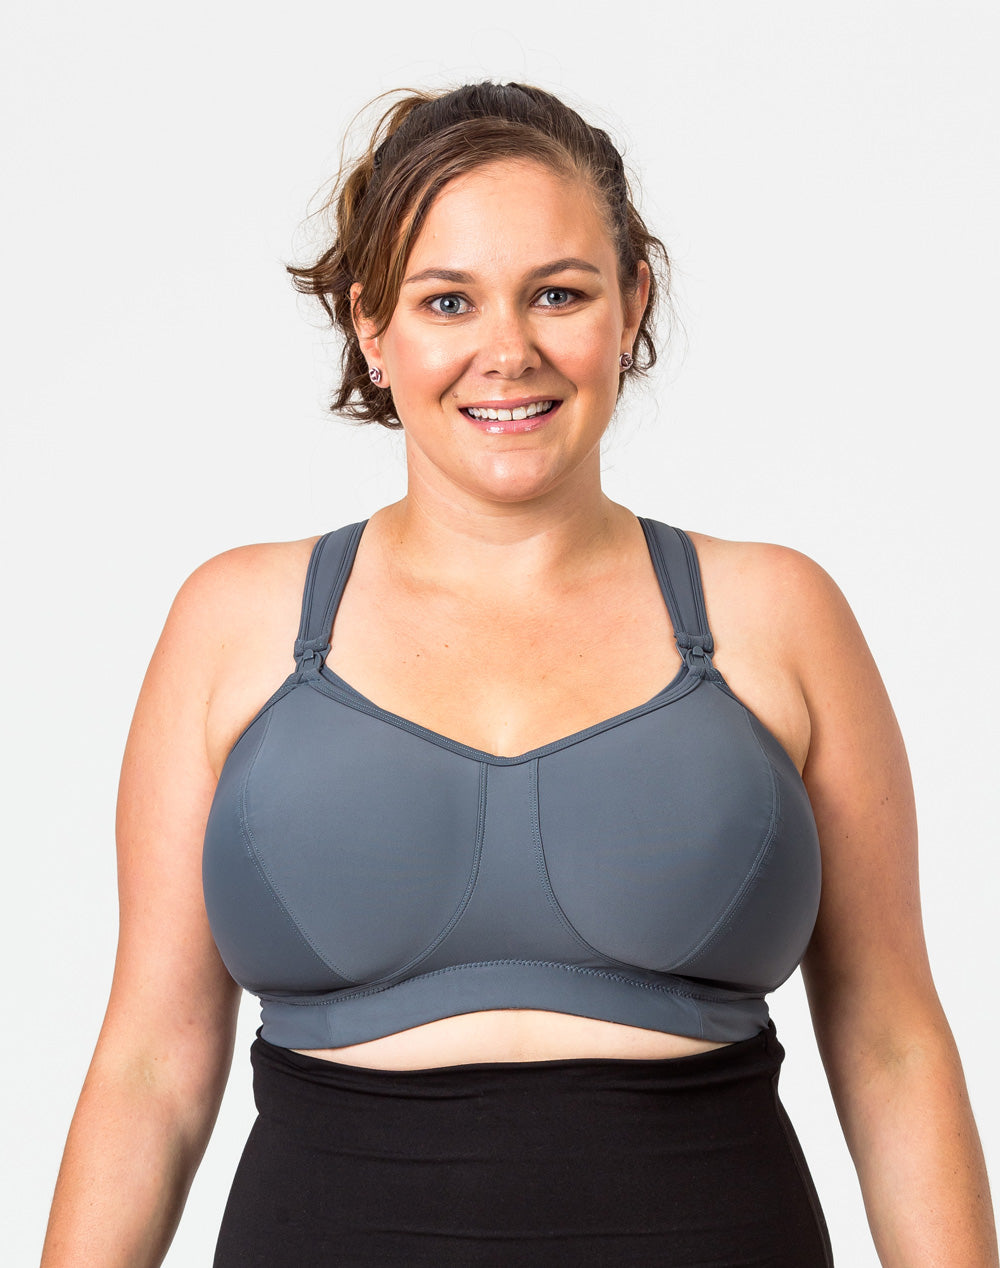 front view of a mum-to-be wearing a plus size nursing bra with drop down cups for easy breastfeeding